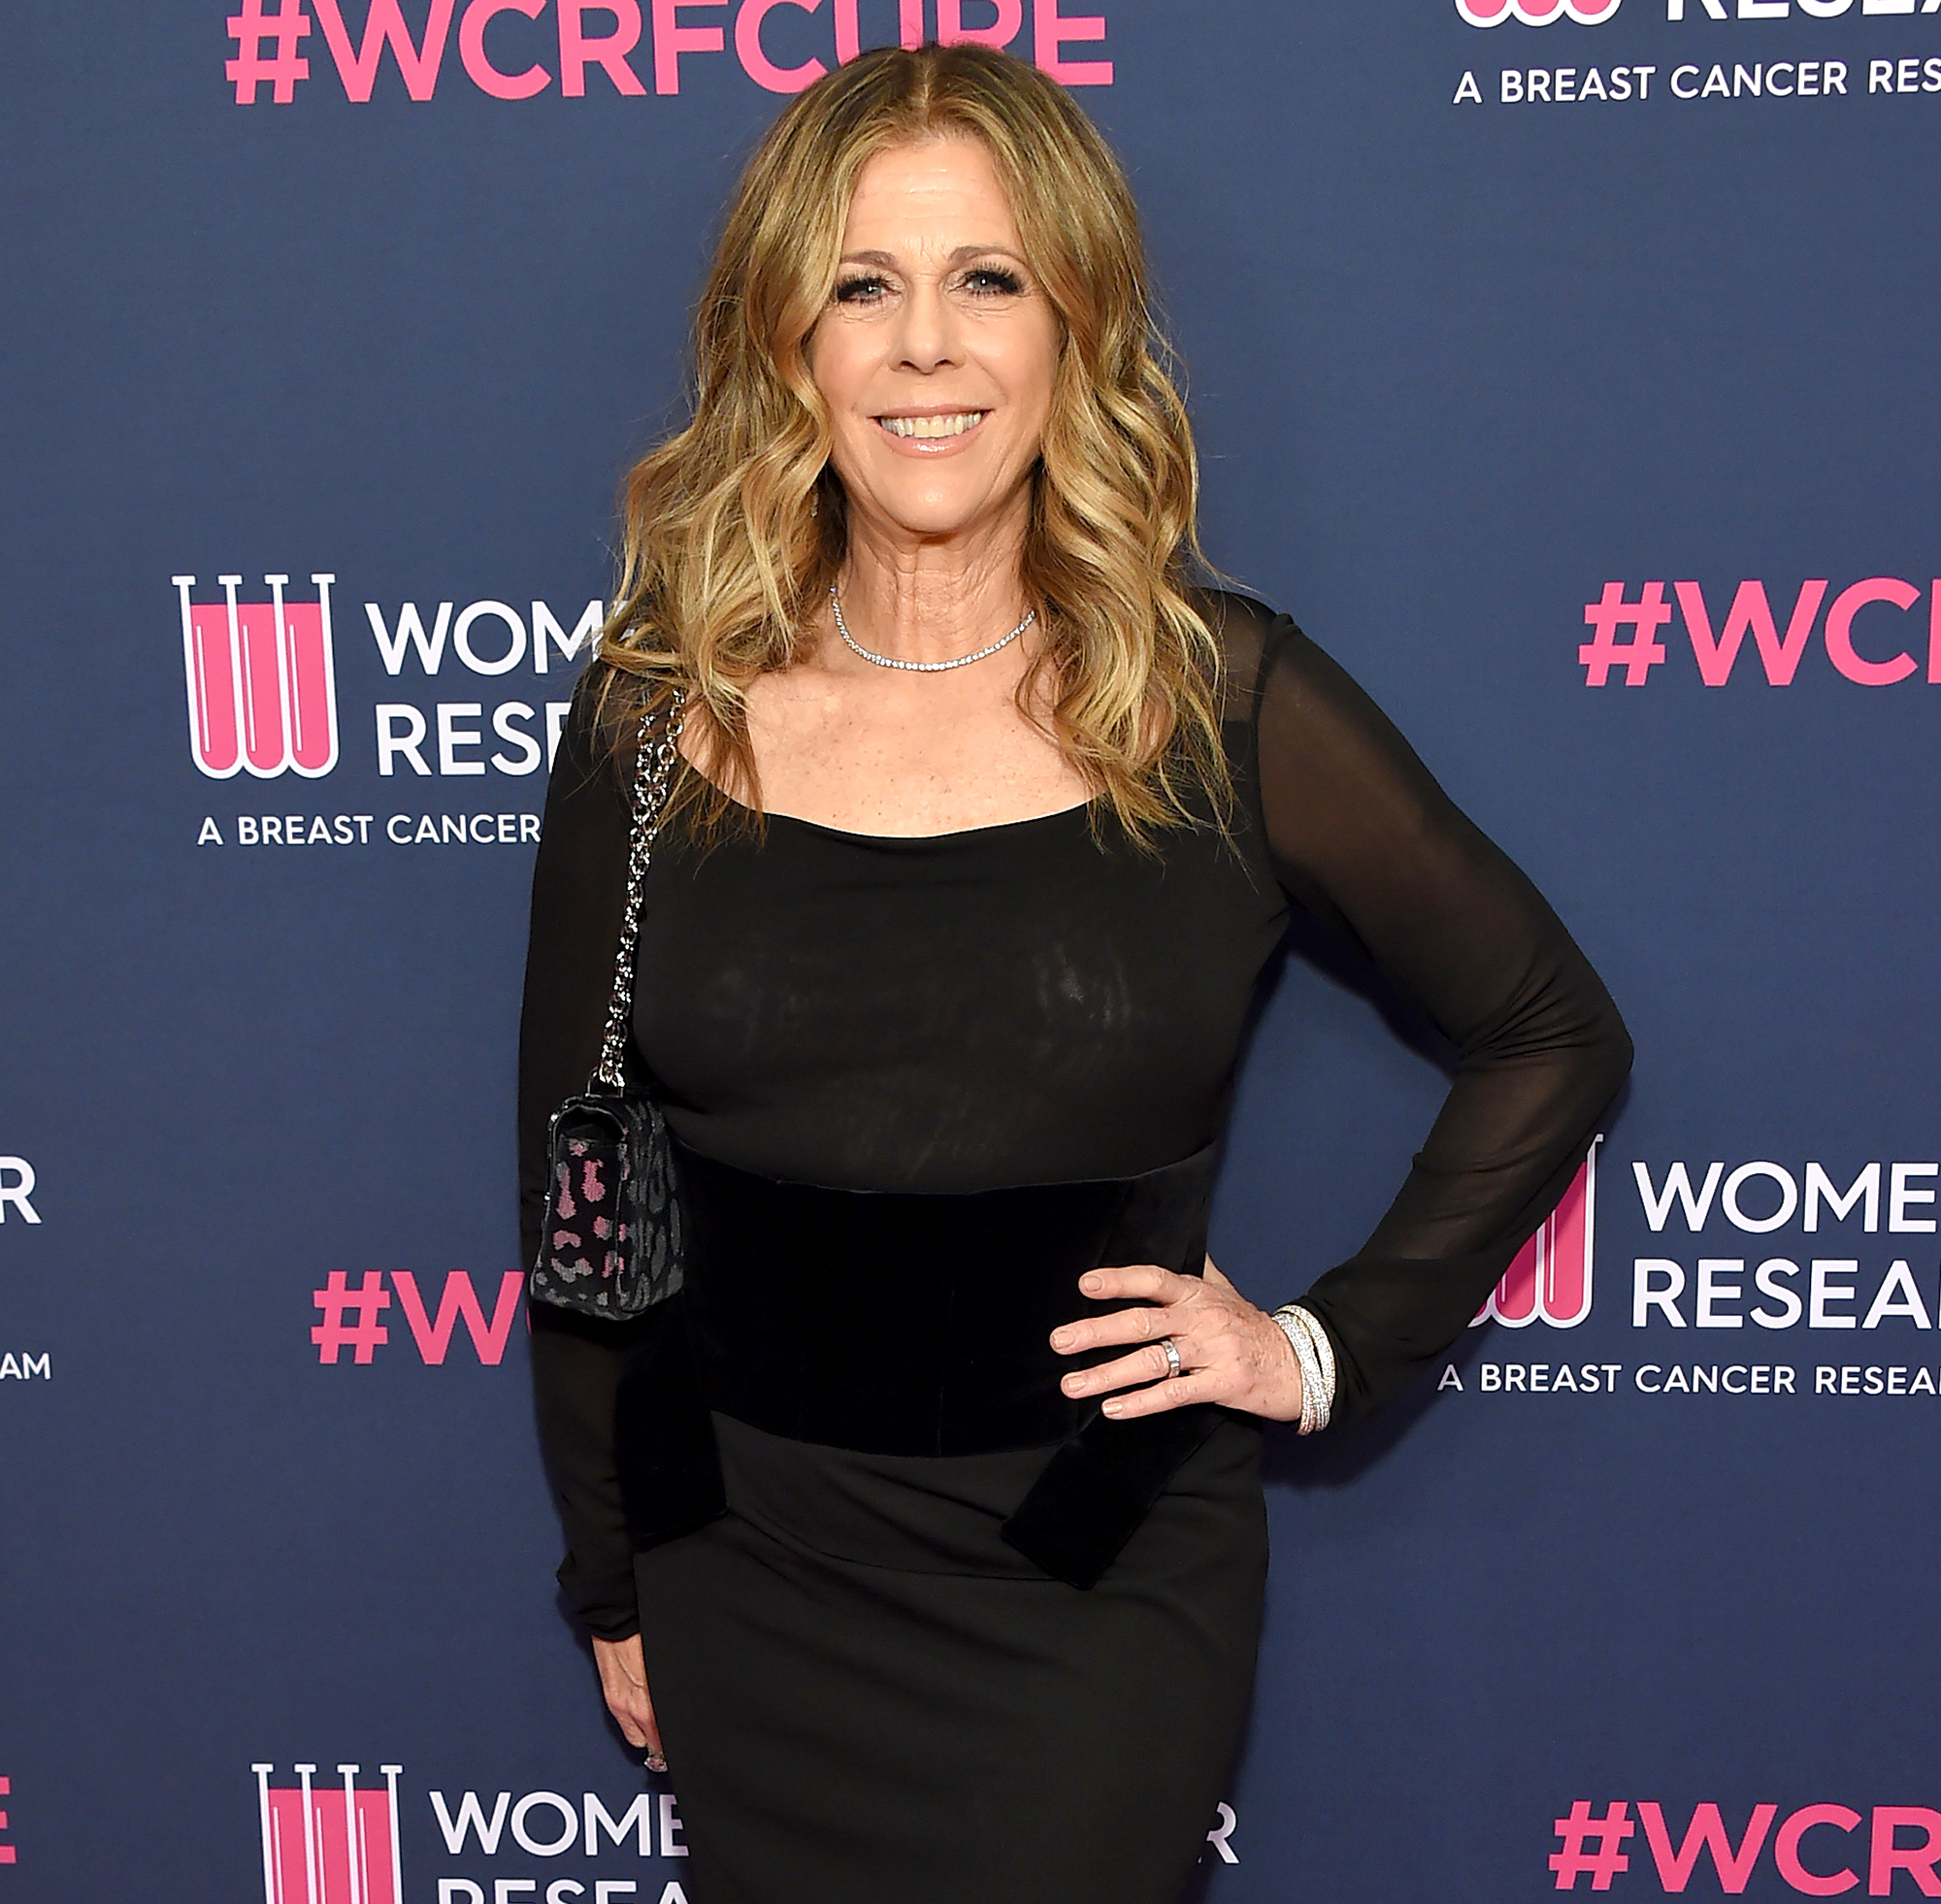 Rita-Wilson-Refused-to-Shake-Hands-2-Weeks-Before-Coronavirus-News